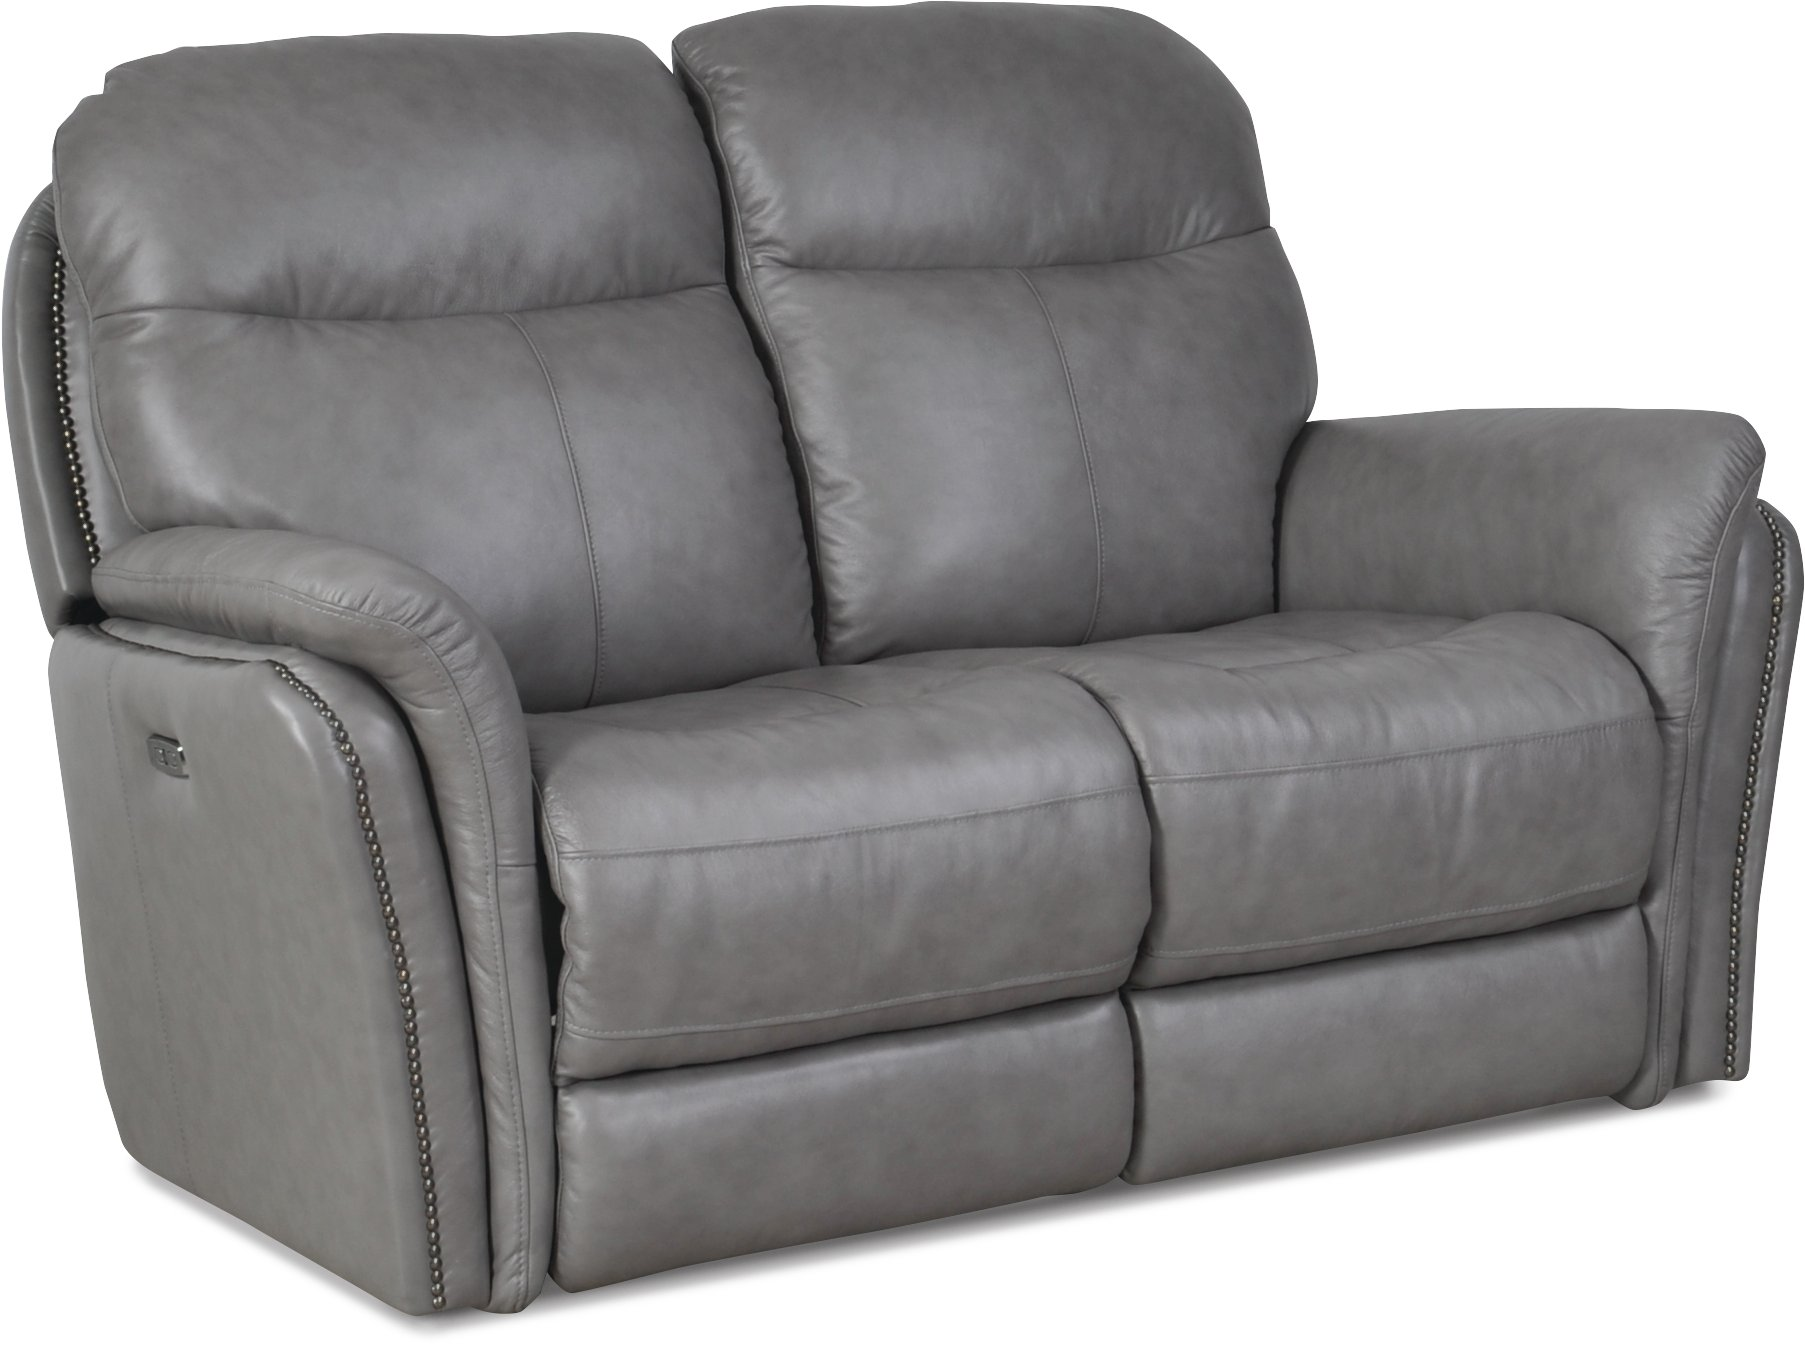 Leather sofa and loveseat combo lane sofa recliner 100 for Leather sofa and loveseat combo